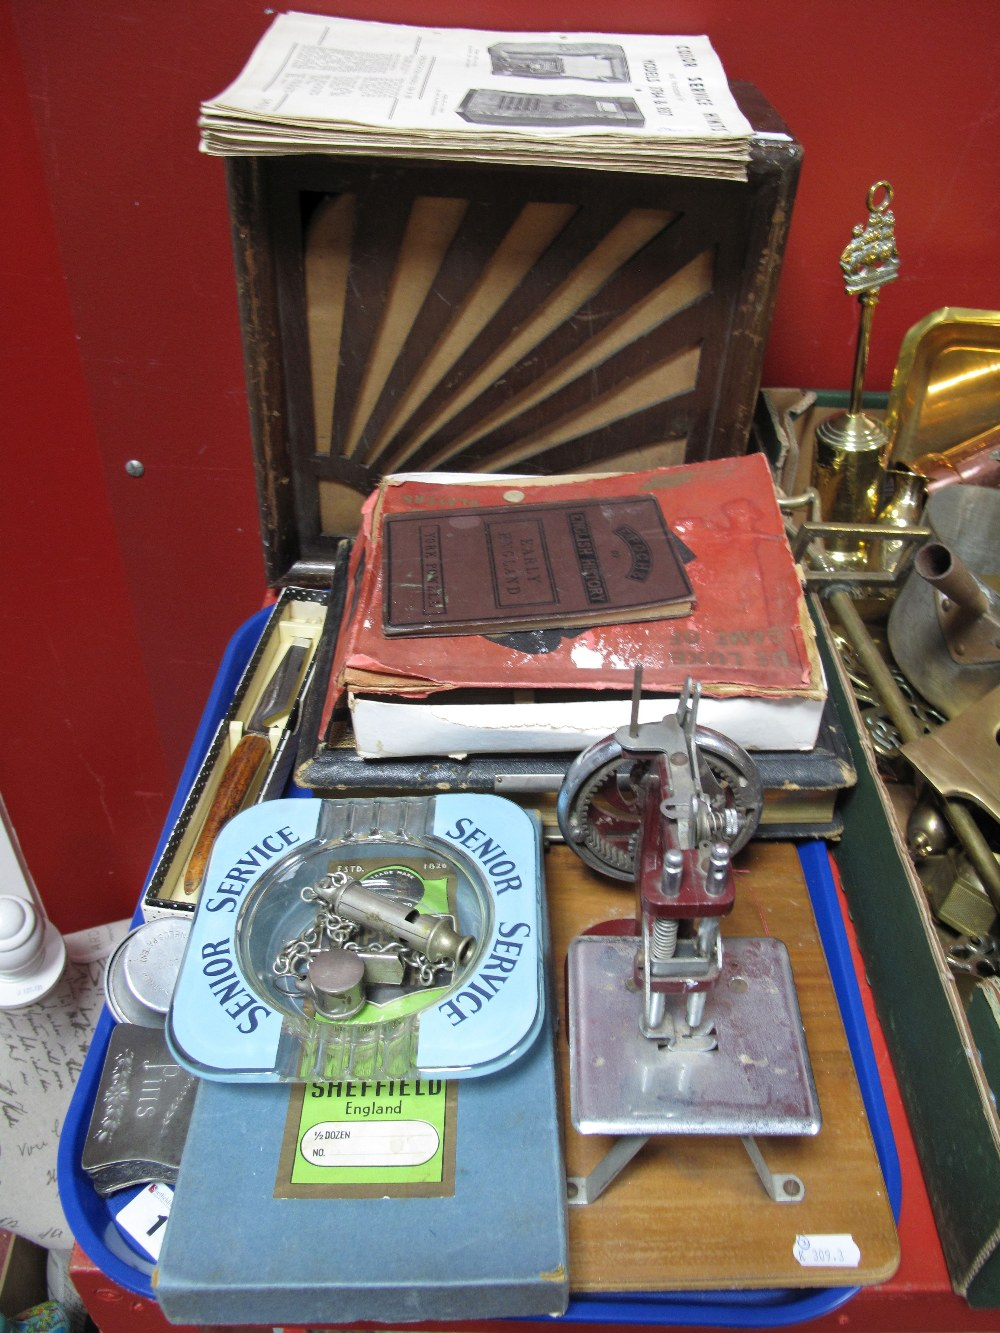 Lot 1 - A Child's Sewing Machine, E.P.B.M pin dish, Acme and Dowler whistles, Senior Service advertising